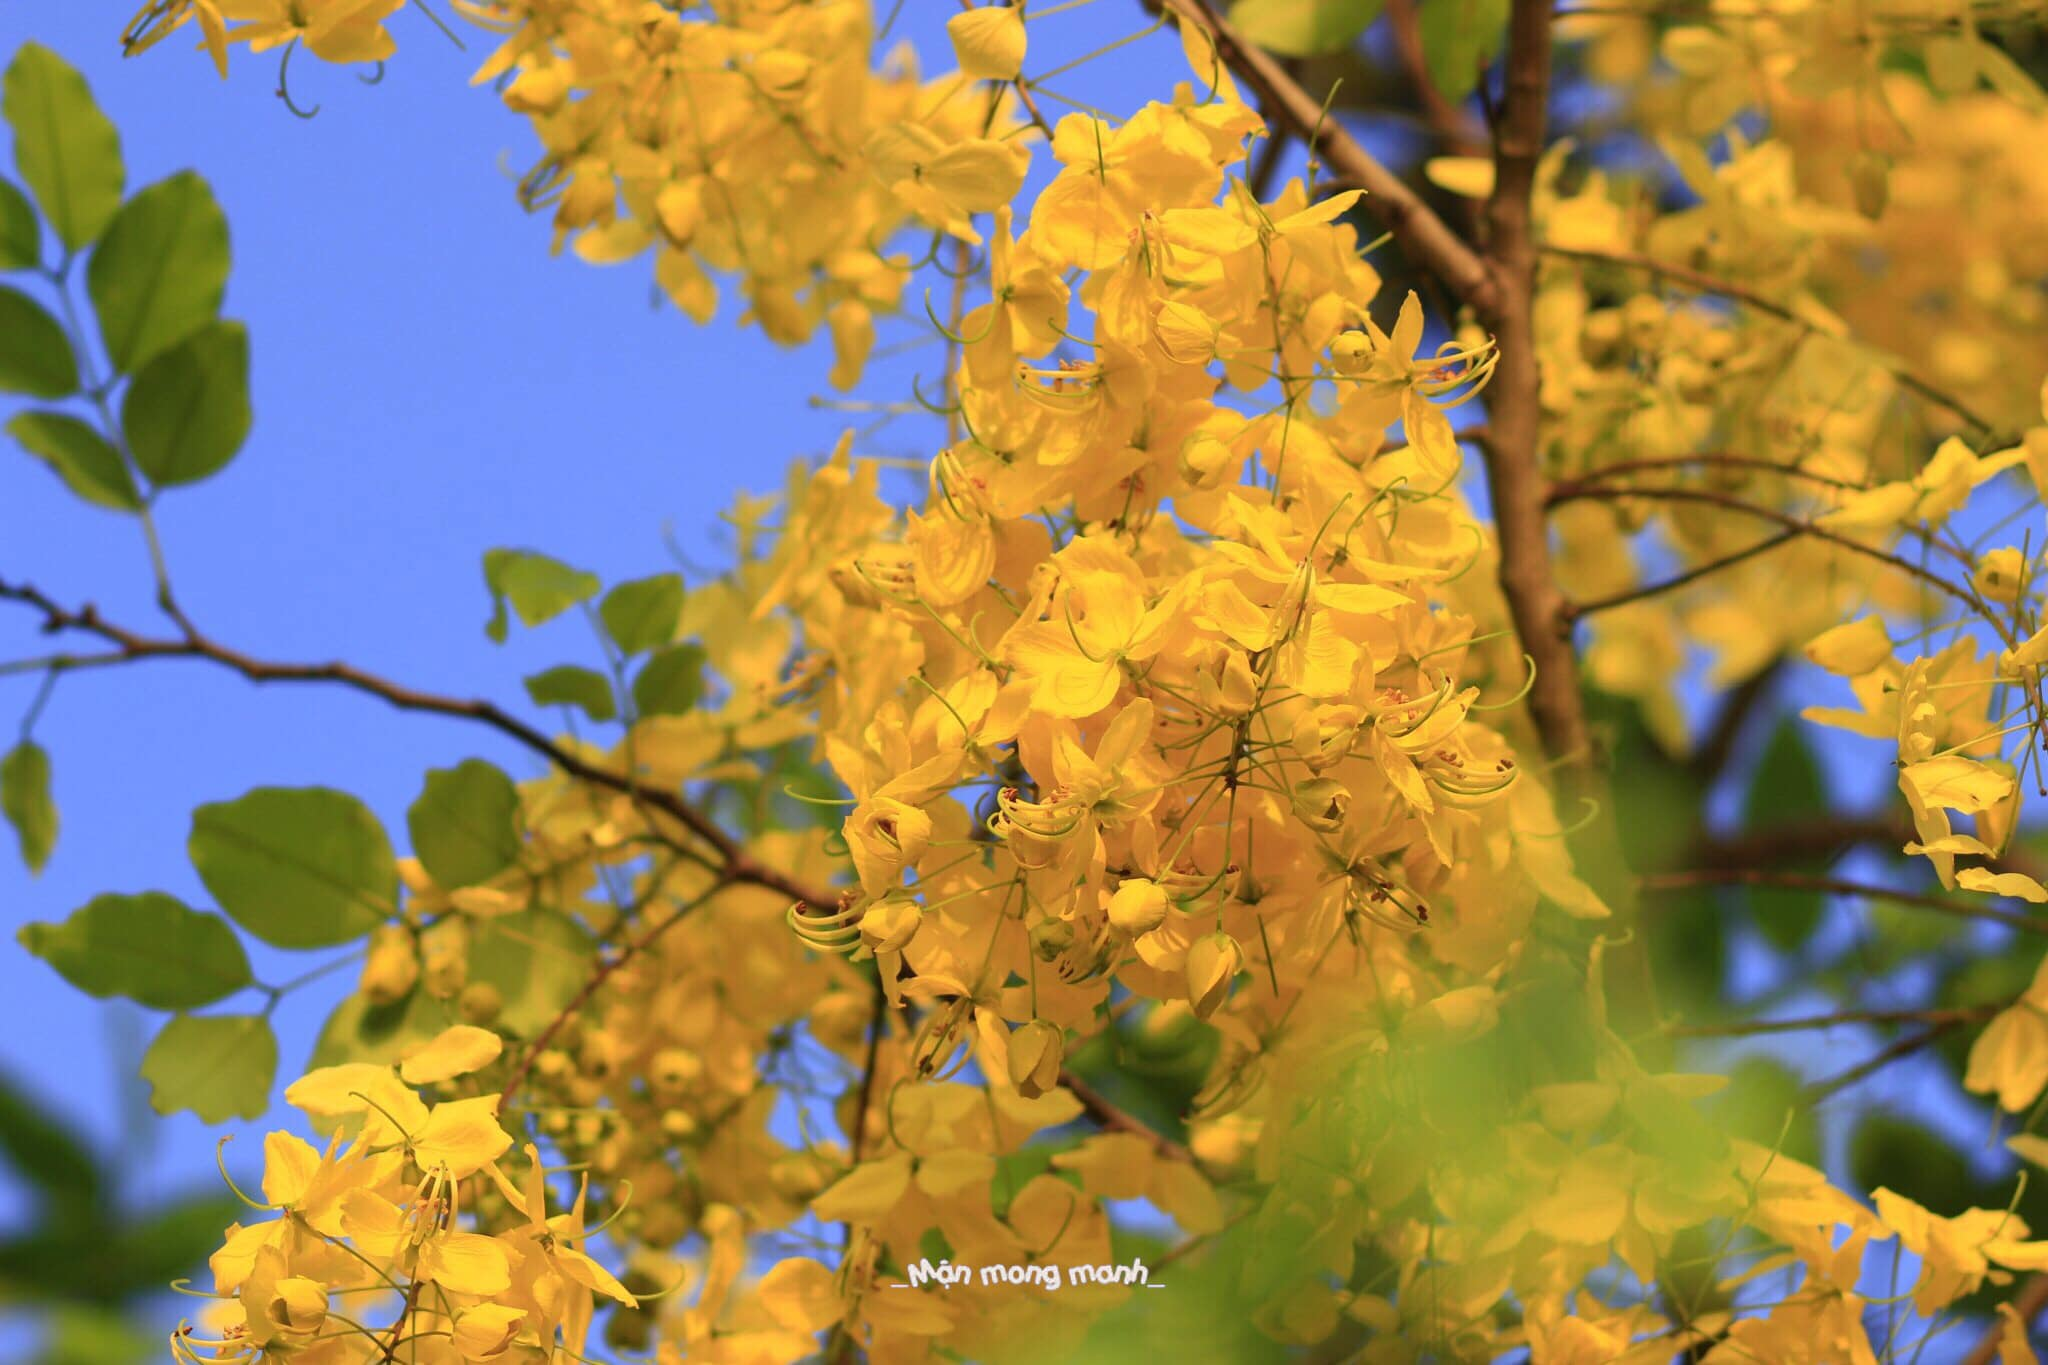 Muong Hoang Yen blooming in the summer